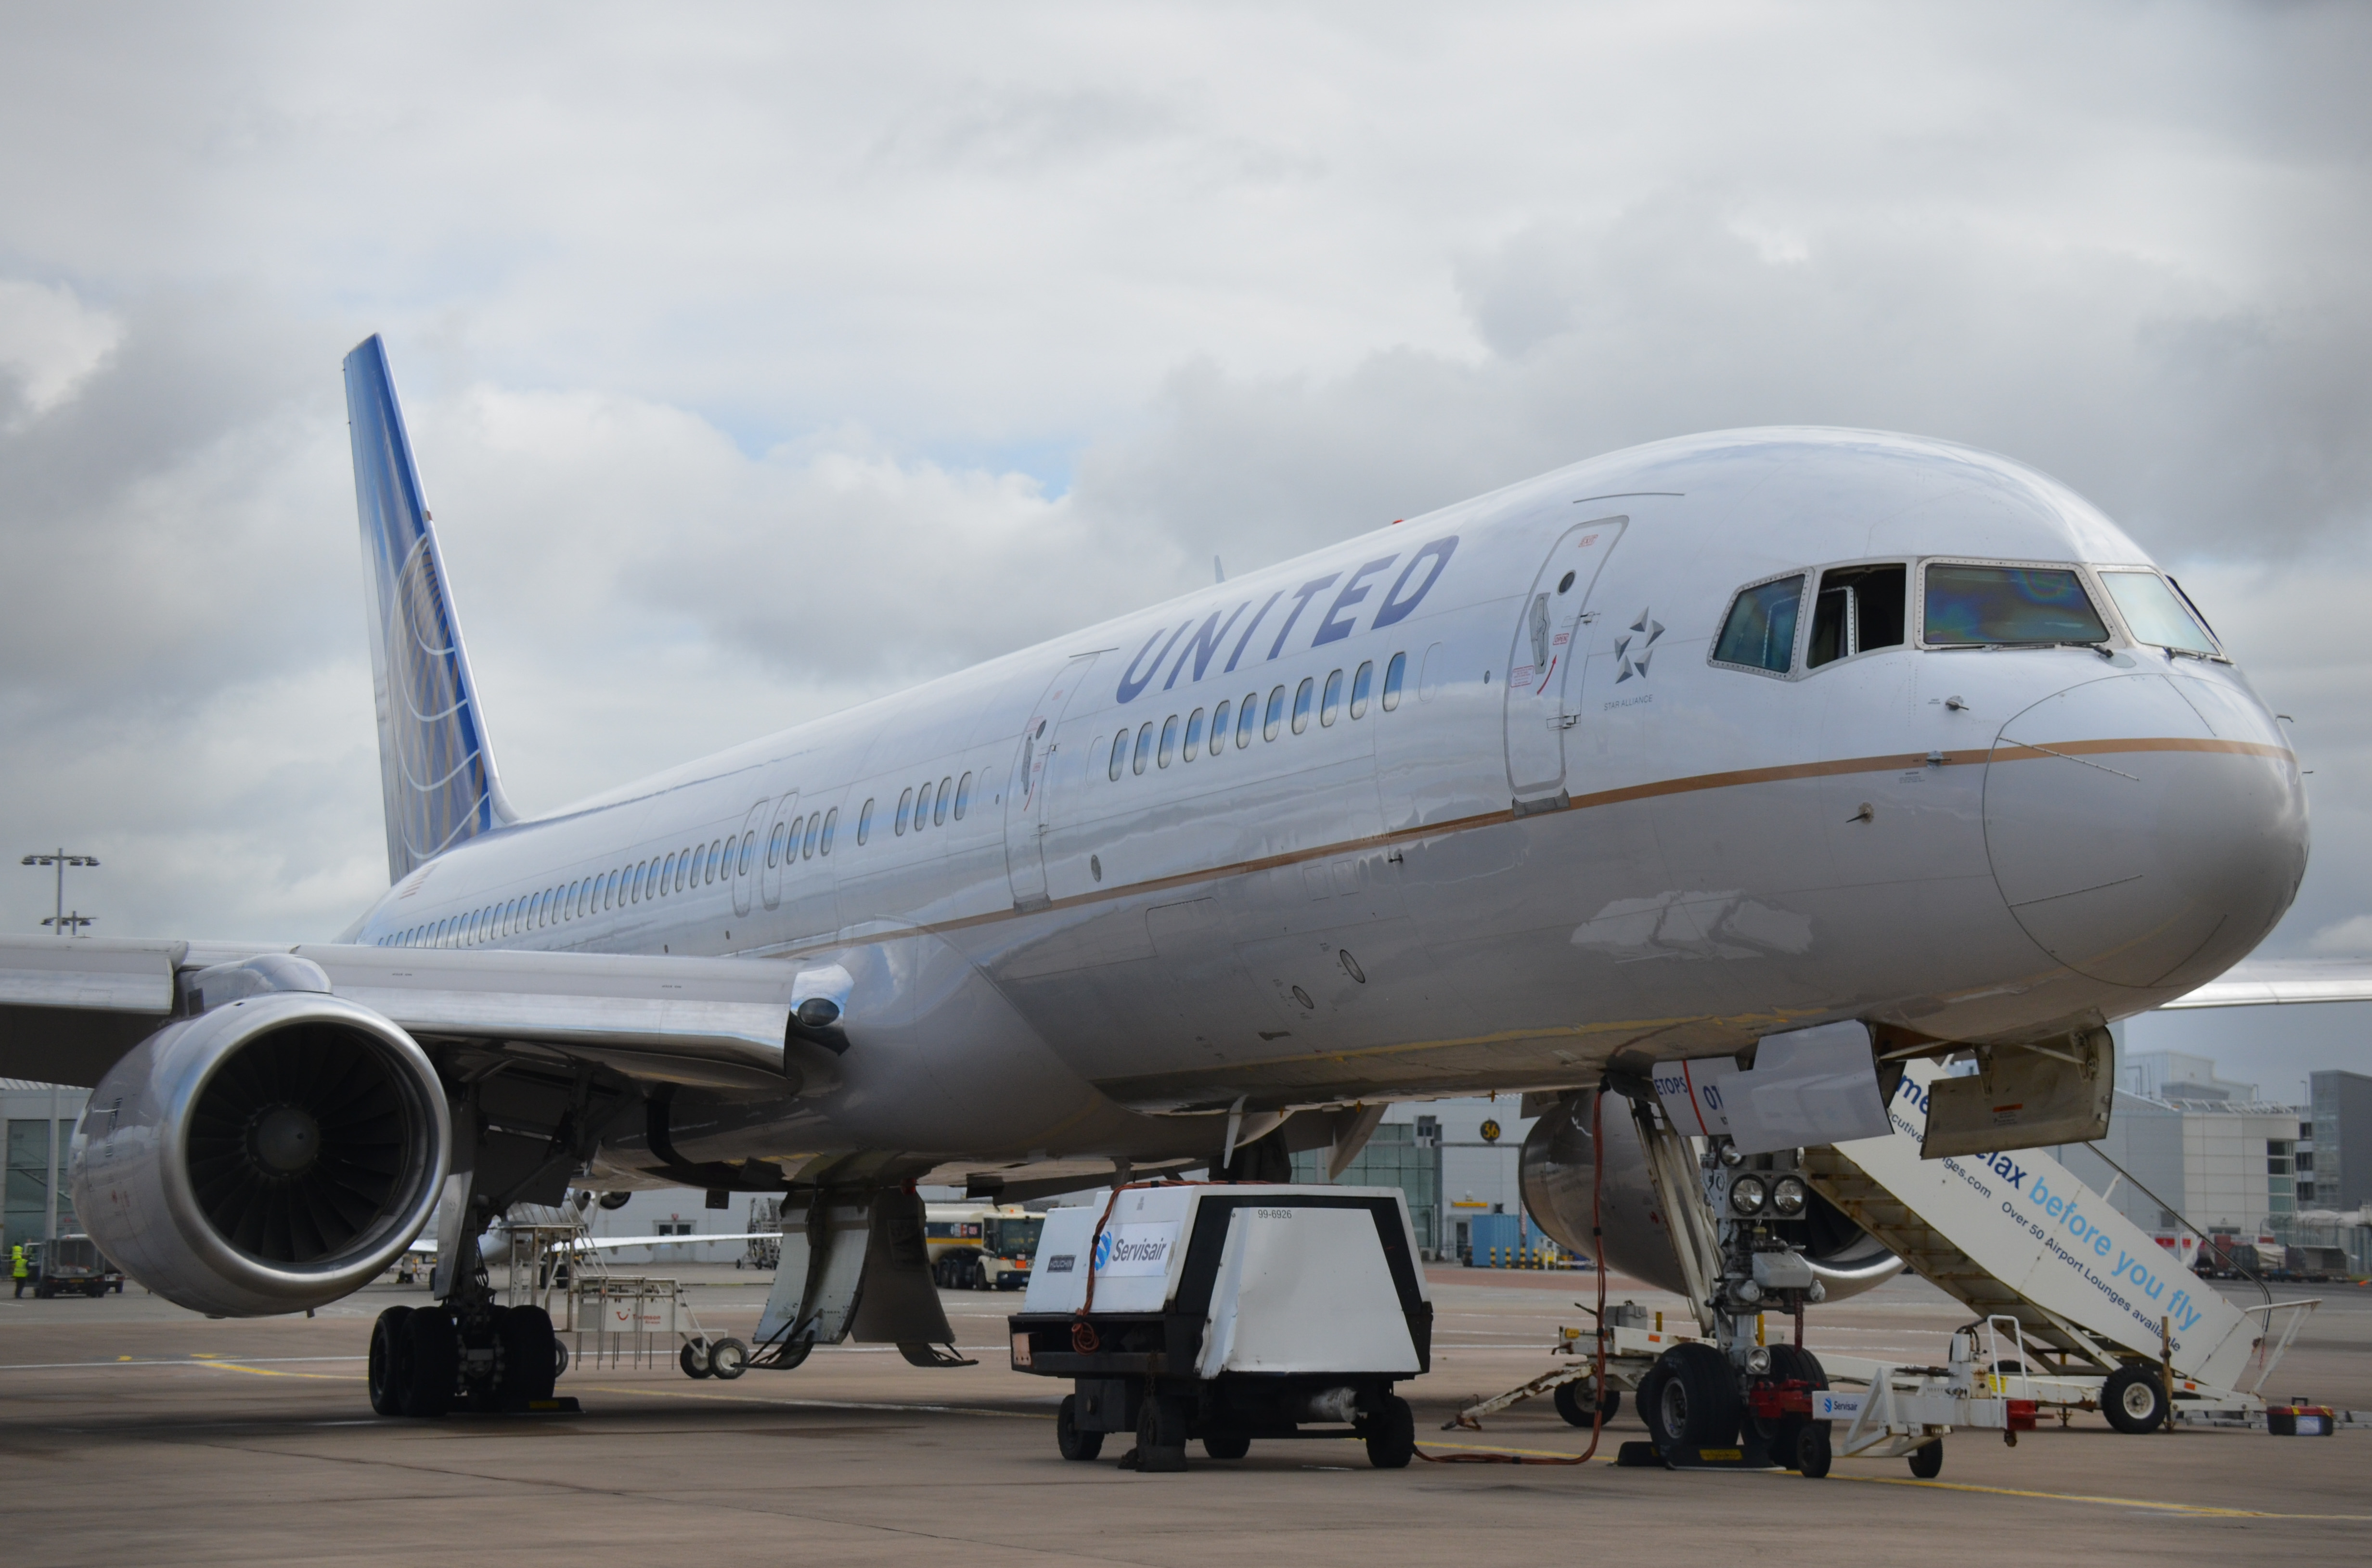 File:Boeing 757-200 (United Airlines) Glasgow Airport